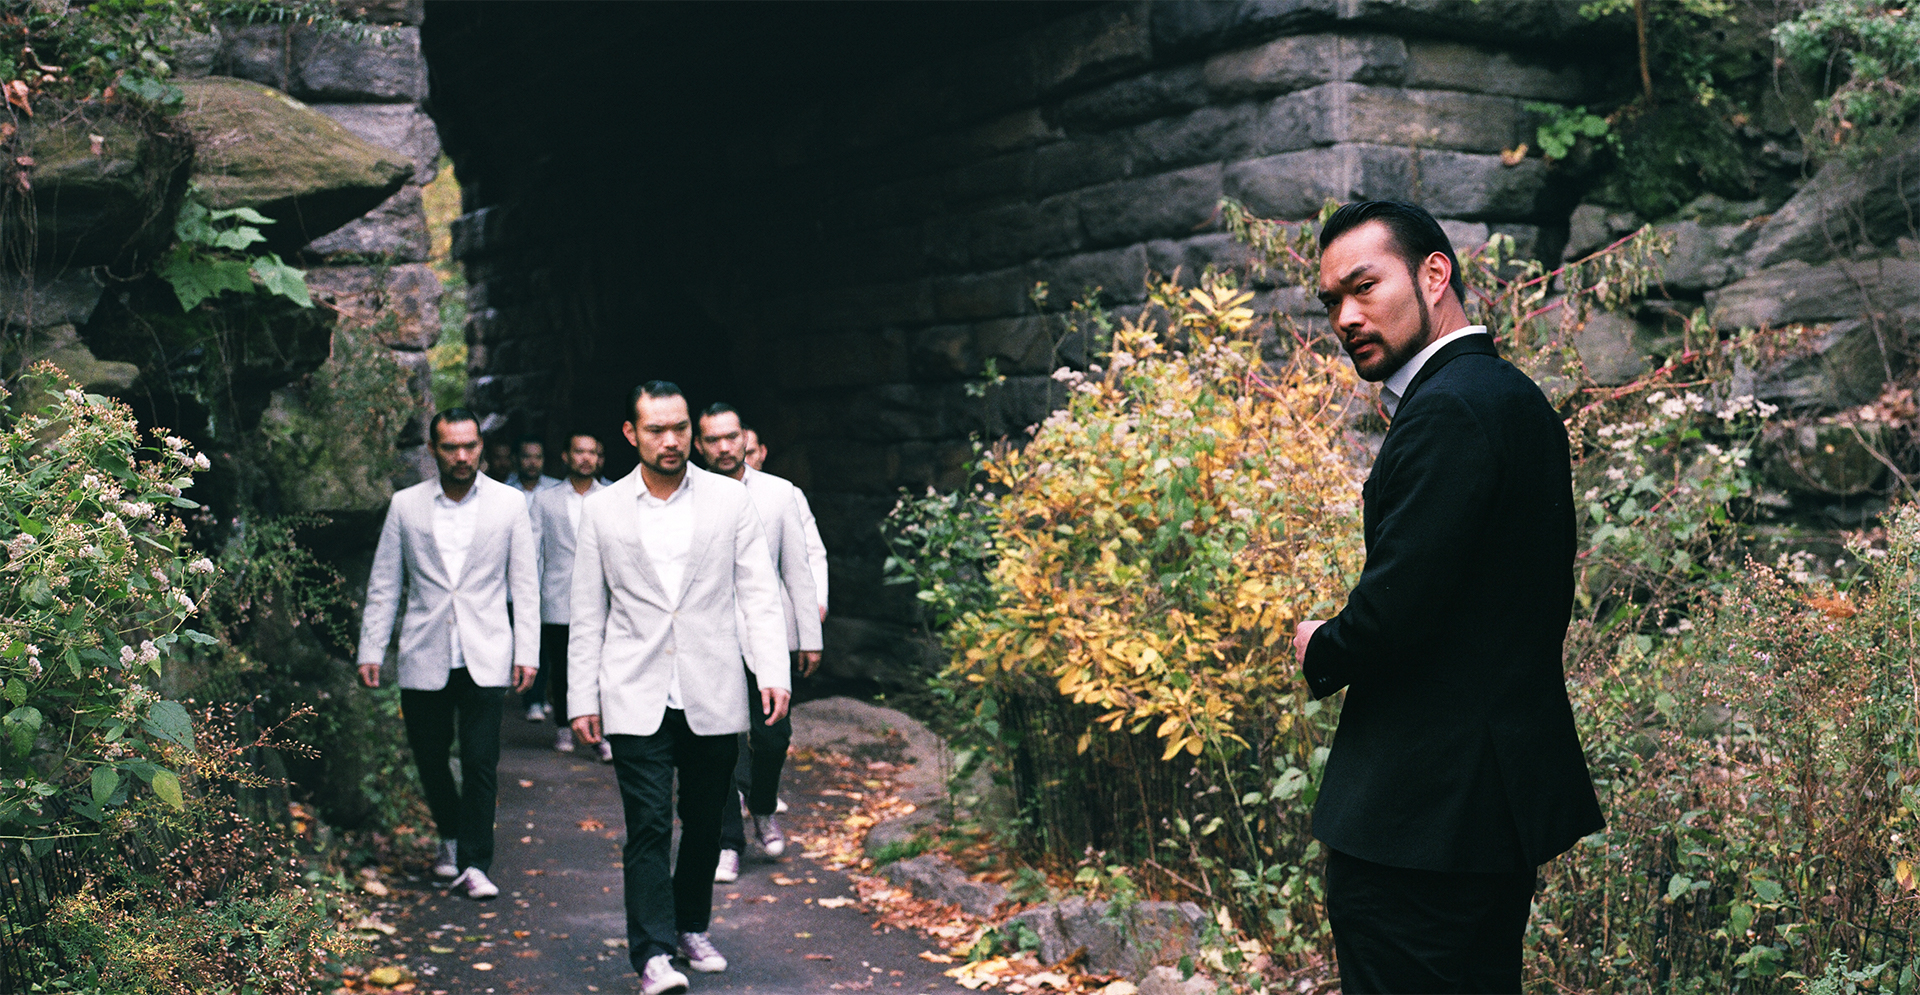 A group of Asian men in white walking under a bridge, towards an Asian man in a black suit.